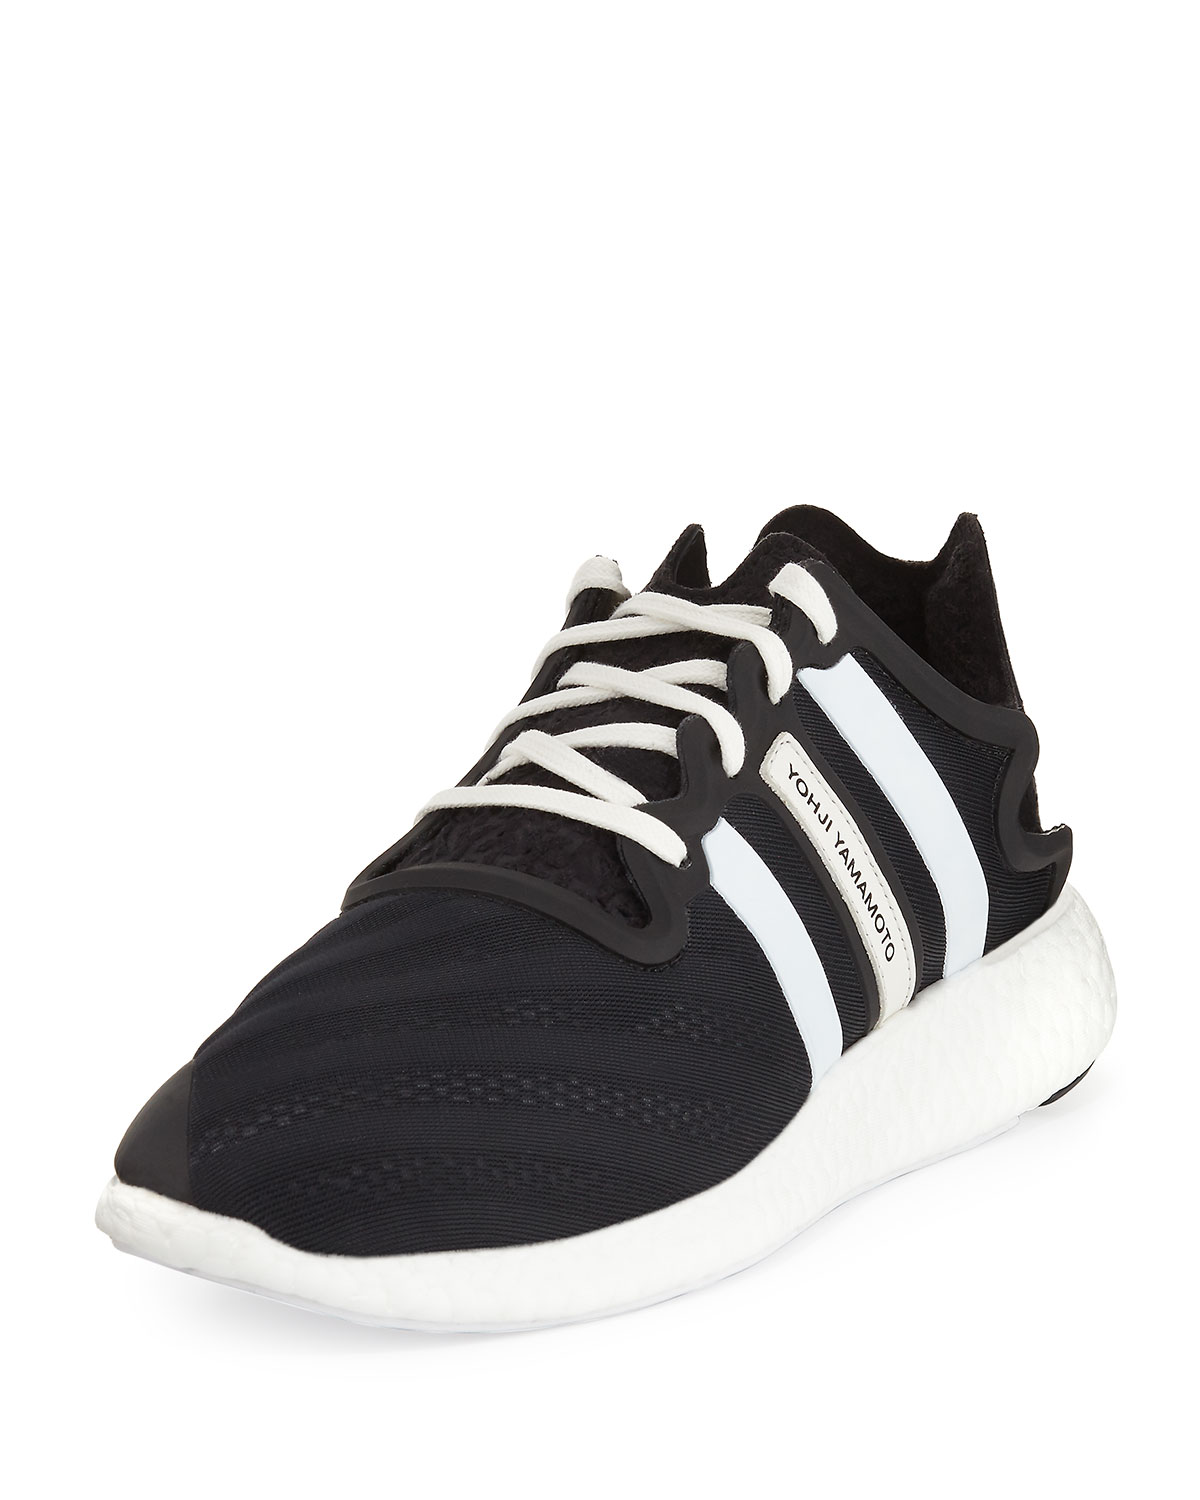 best service 5961f 1f12d Y-3 Men s Y-3 Yohji Run Sneaker, Black White